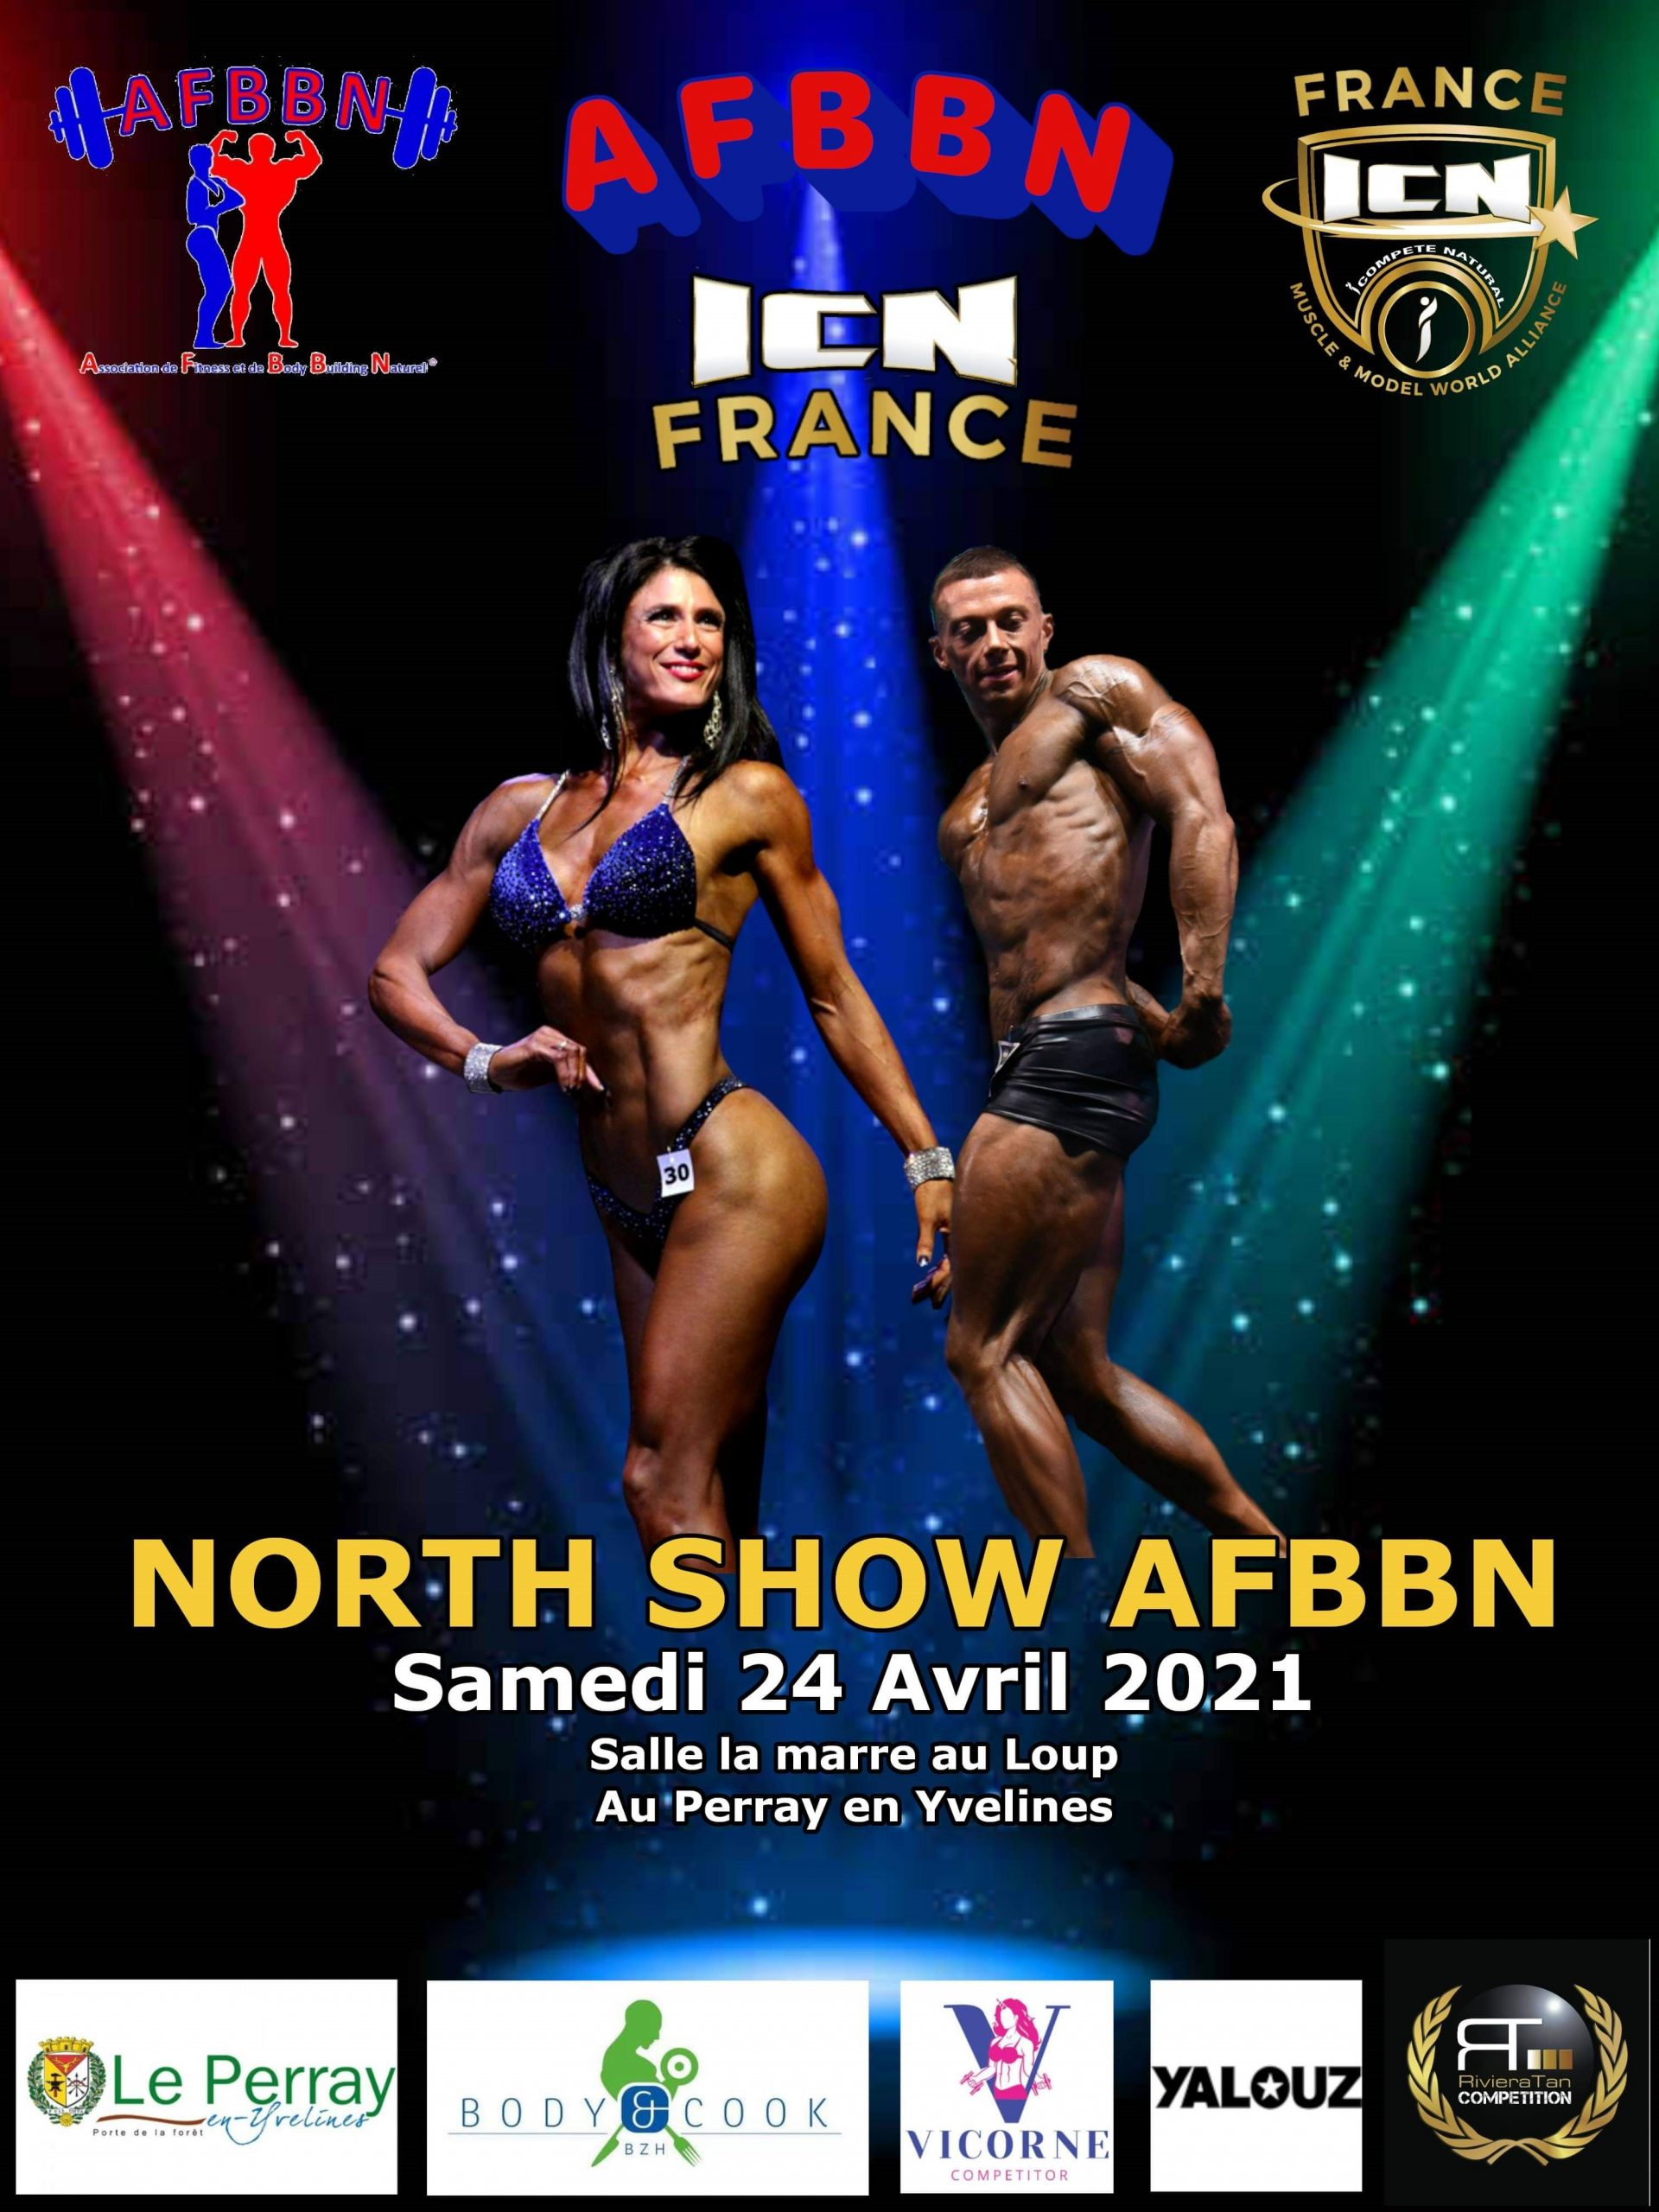 North Show AFBBN 2021